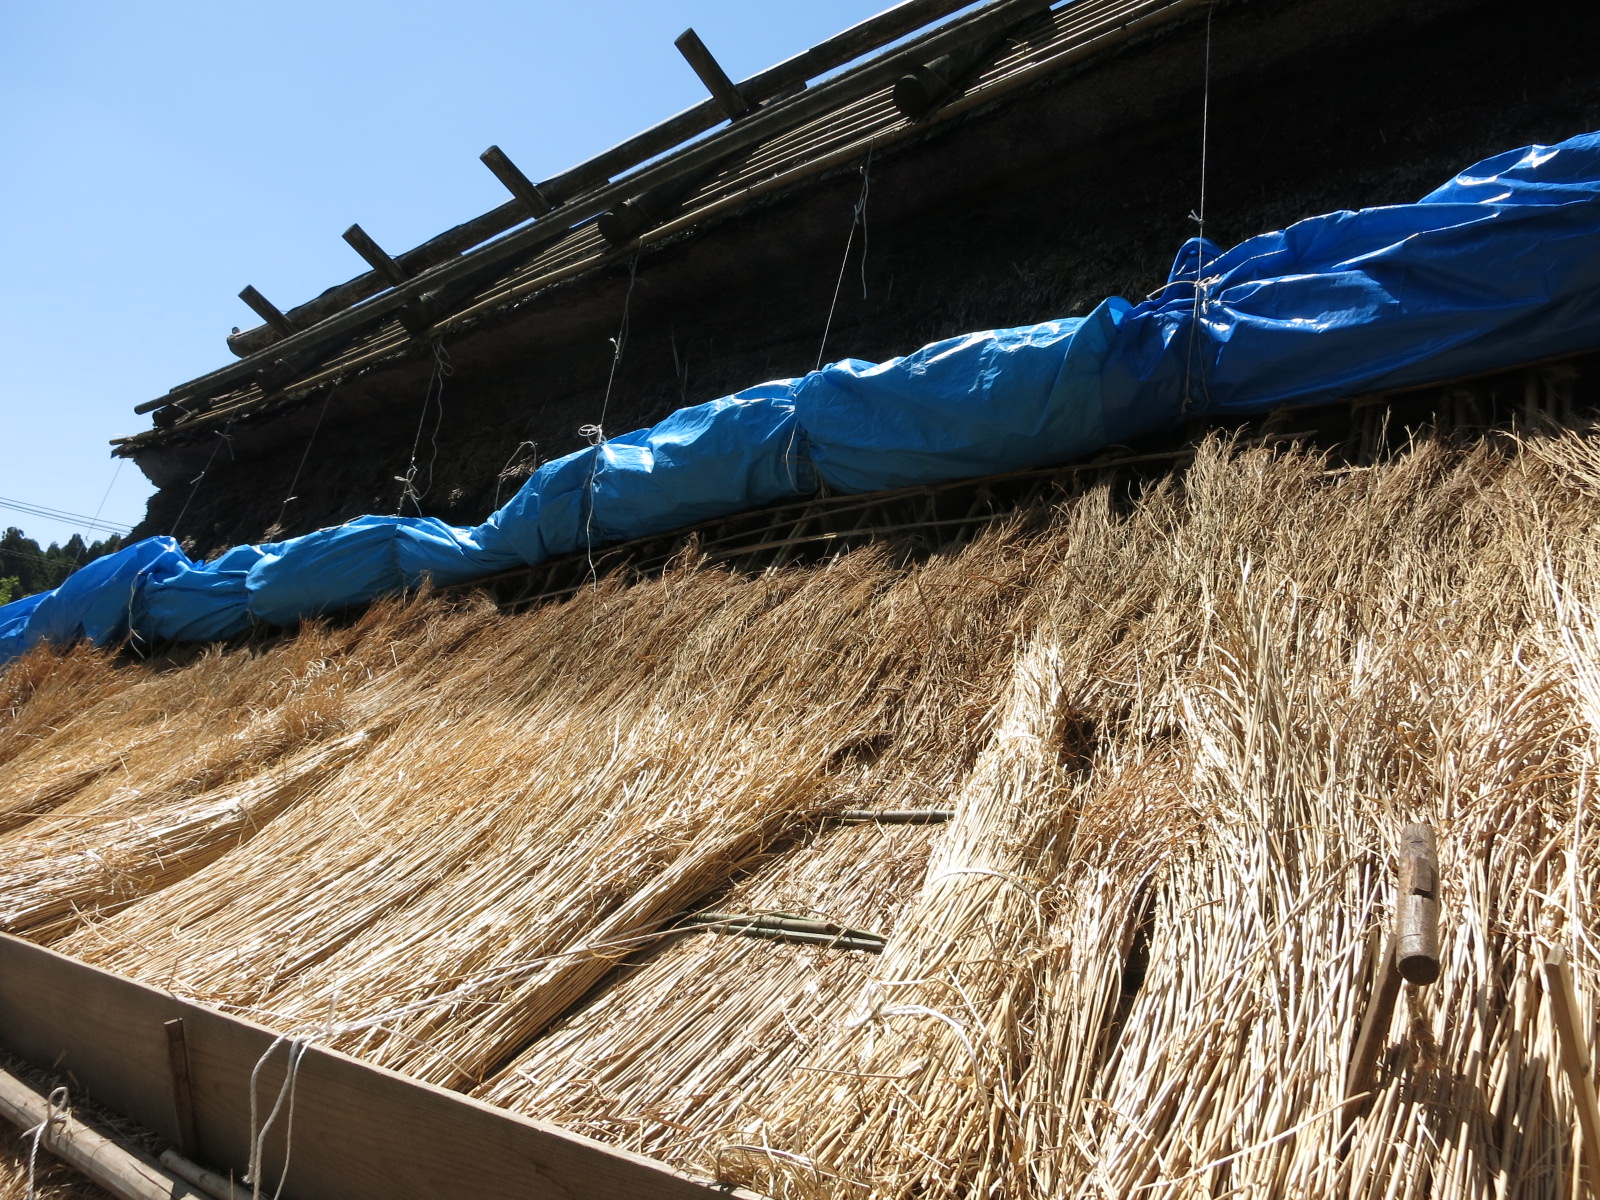 Thatched Roof of 150-year-old house